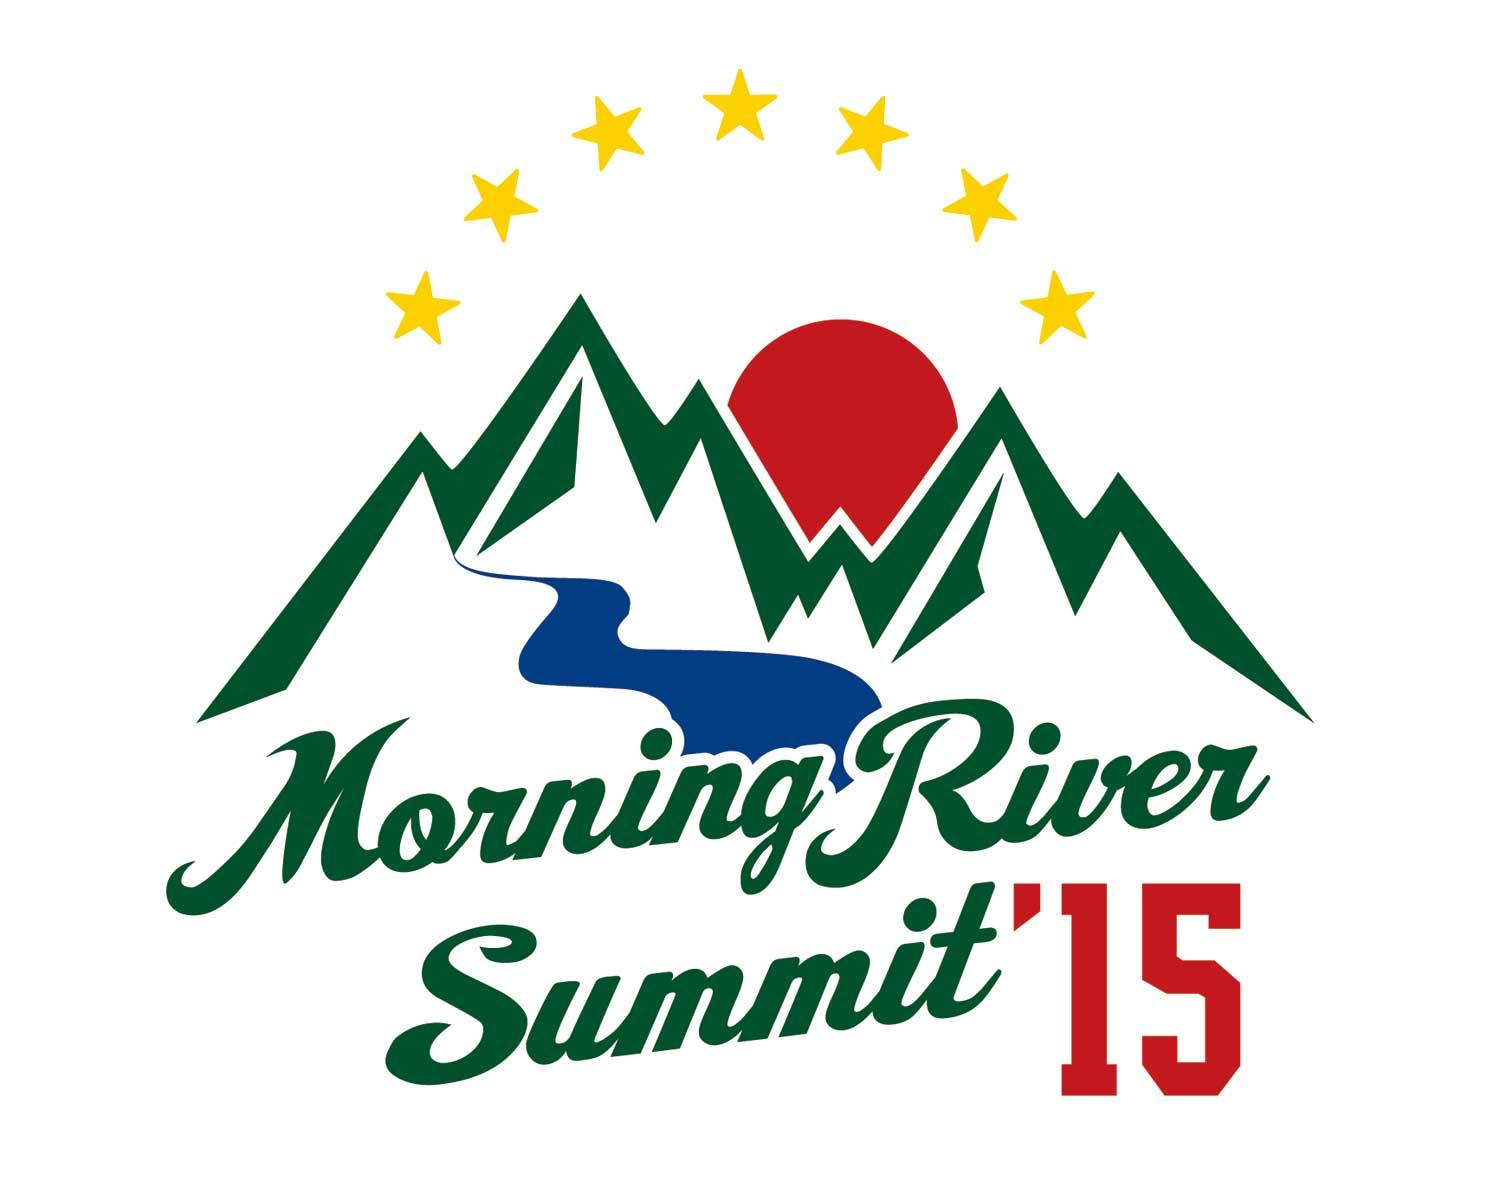 Morning River Summit '15